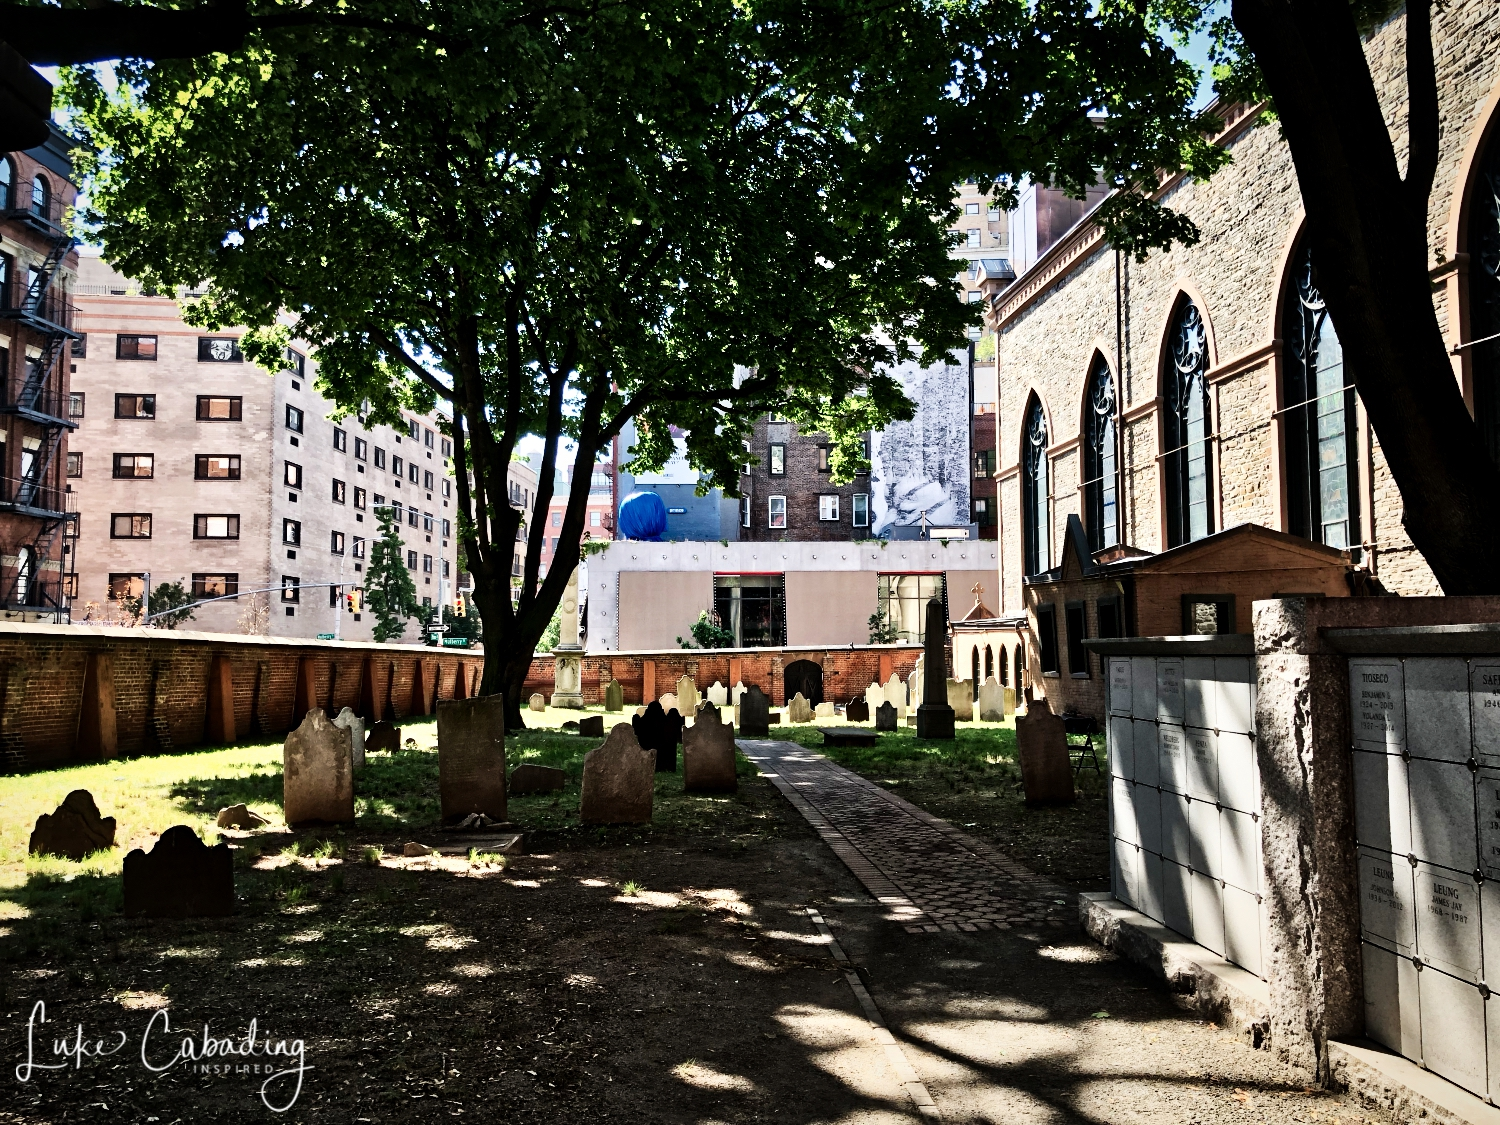 When officials of the newly established Diocese of New York decided to build the city's first cathedral in 1809, they selected a site at Mott and Prince Streets that was within the burying ground of St. Peter's Church. St. Peter's, the city's first Catholic church, created the cemetery at the beginning of the 19th century when the graveyard around their church on Barclay Street became full. In 1801, they purchased several lots on the northwest corner of Prince and Mott streets, in the area that is now known as NoLita; an 1803 purchase of additional lots on the northeast corner of Prince and Mulberry streets enlarged the new burial ground.